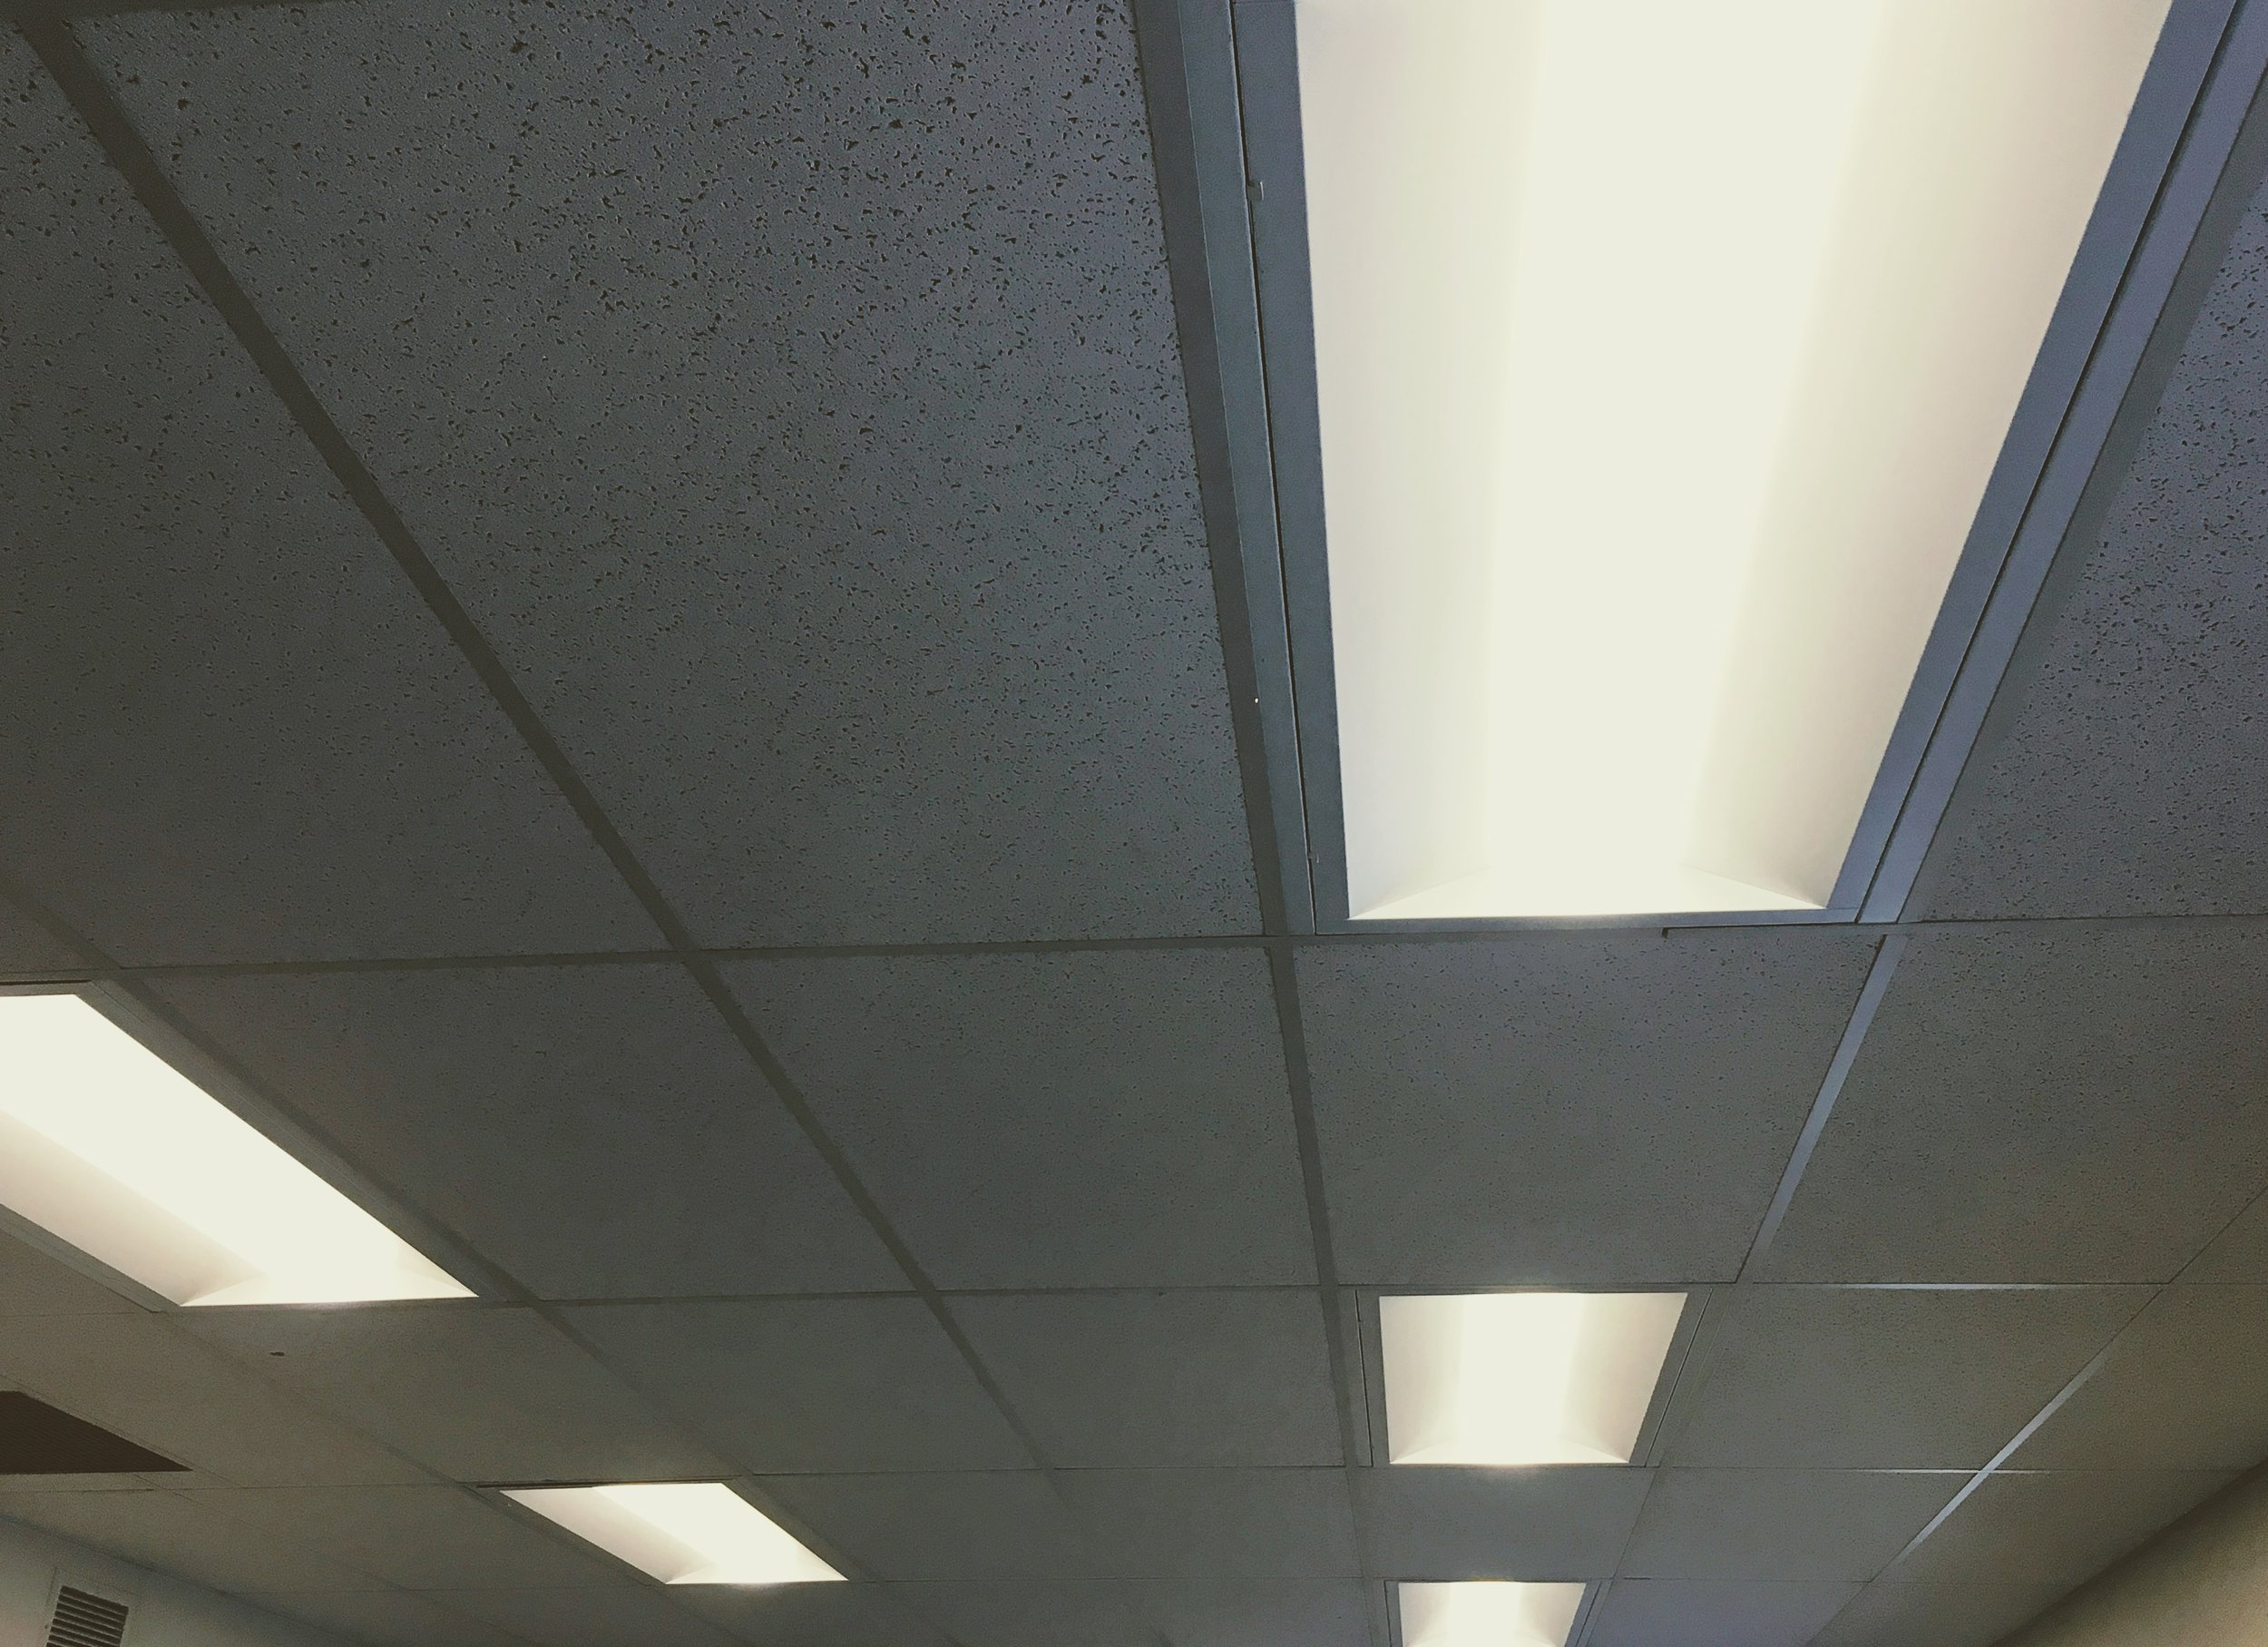 LED Office Ceiling Light.jpg